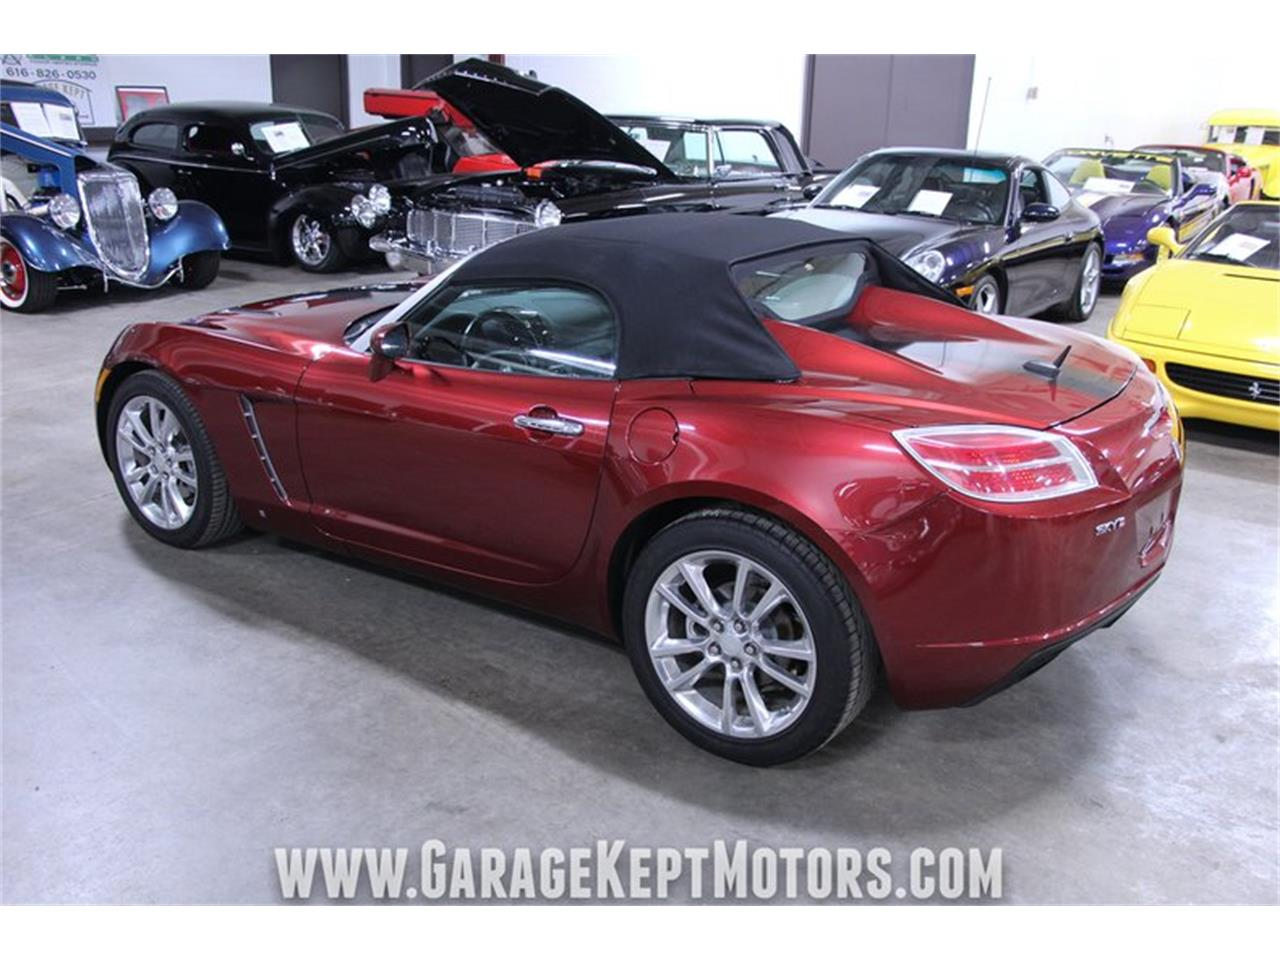 2009 Saturn Sky for sale in Grand Rapids, MI – photo 4